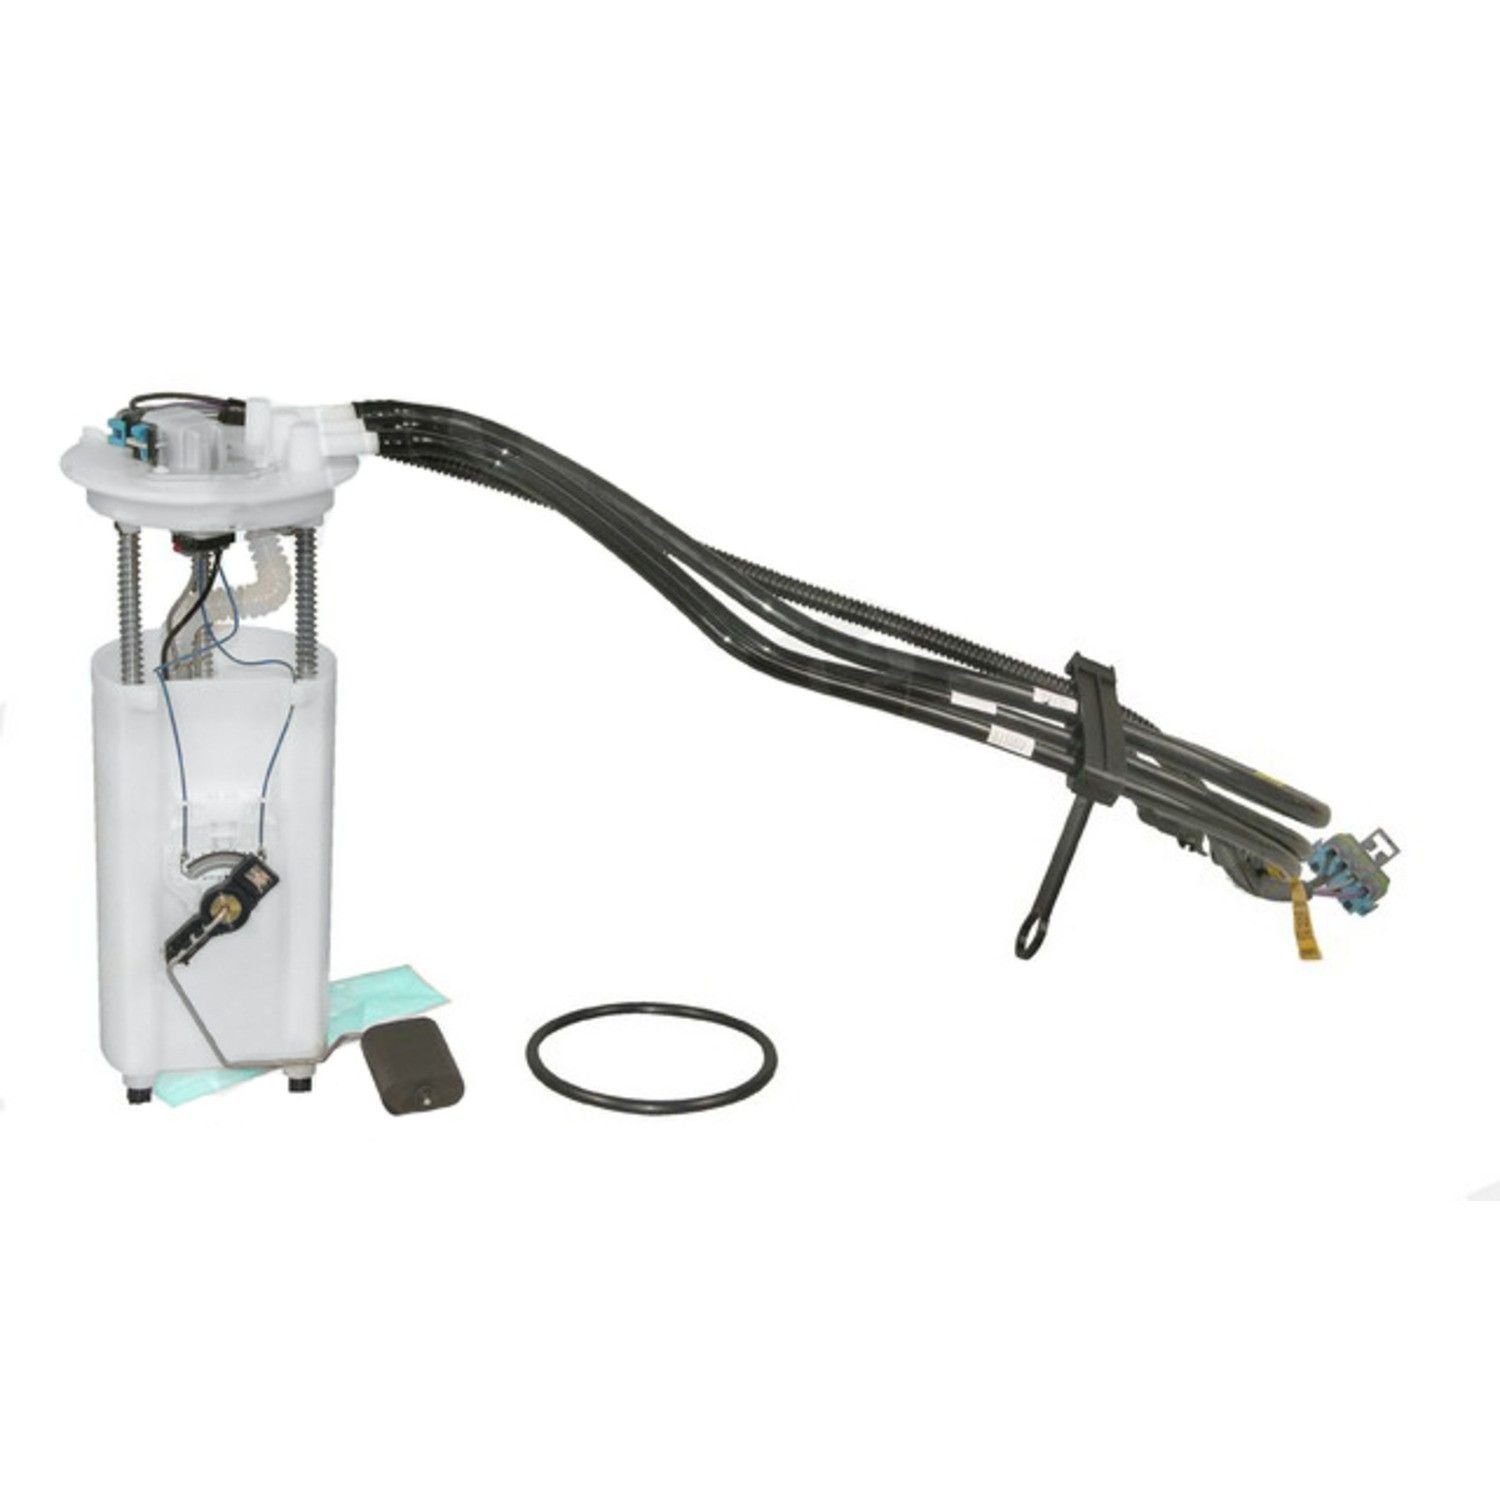 Chevrolet Cavalier Fuel Pump Module Assembly Replacement Acdelco Wiring Harness Includes Sending Unit Float Reservoir Strainer Upgraded And Tank Seal Included